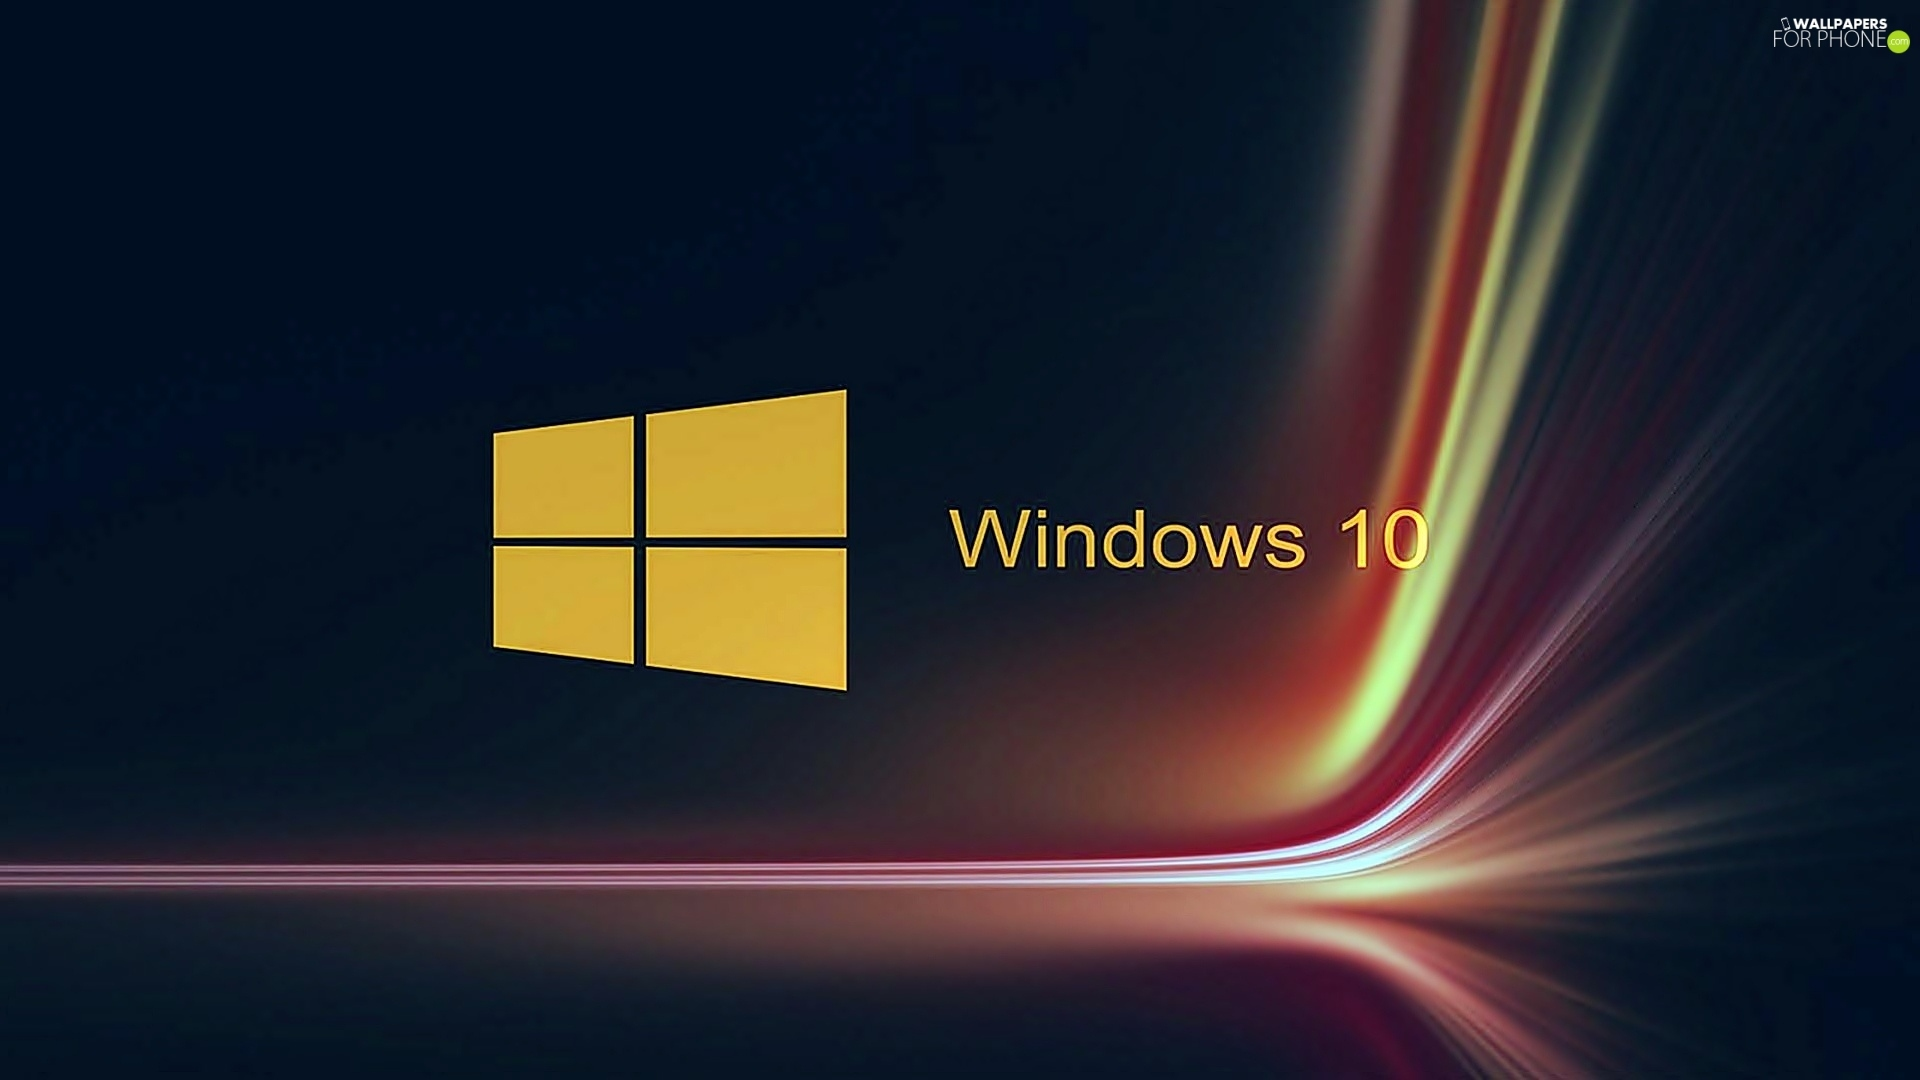 system windows 10 logo operating for phone wallpapers